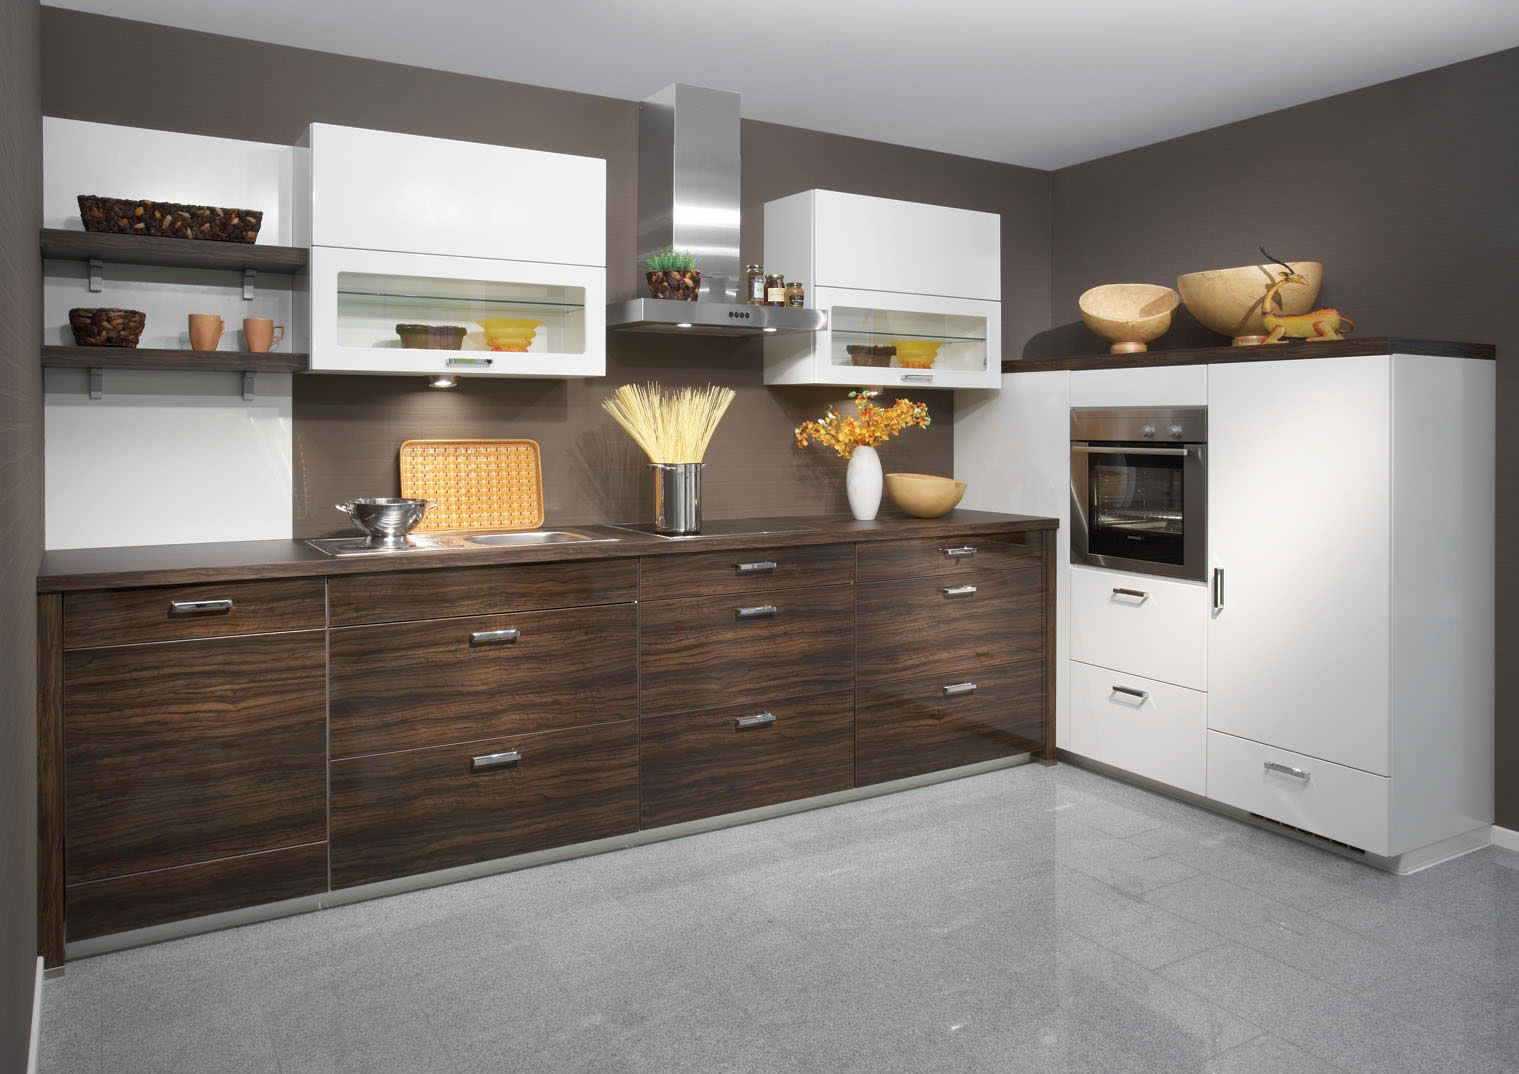 Kitchen Website Design Exterior Unowhitehighglosskitchendesigninteriorexteriorplan .